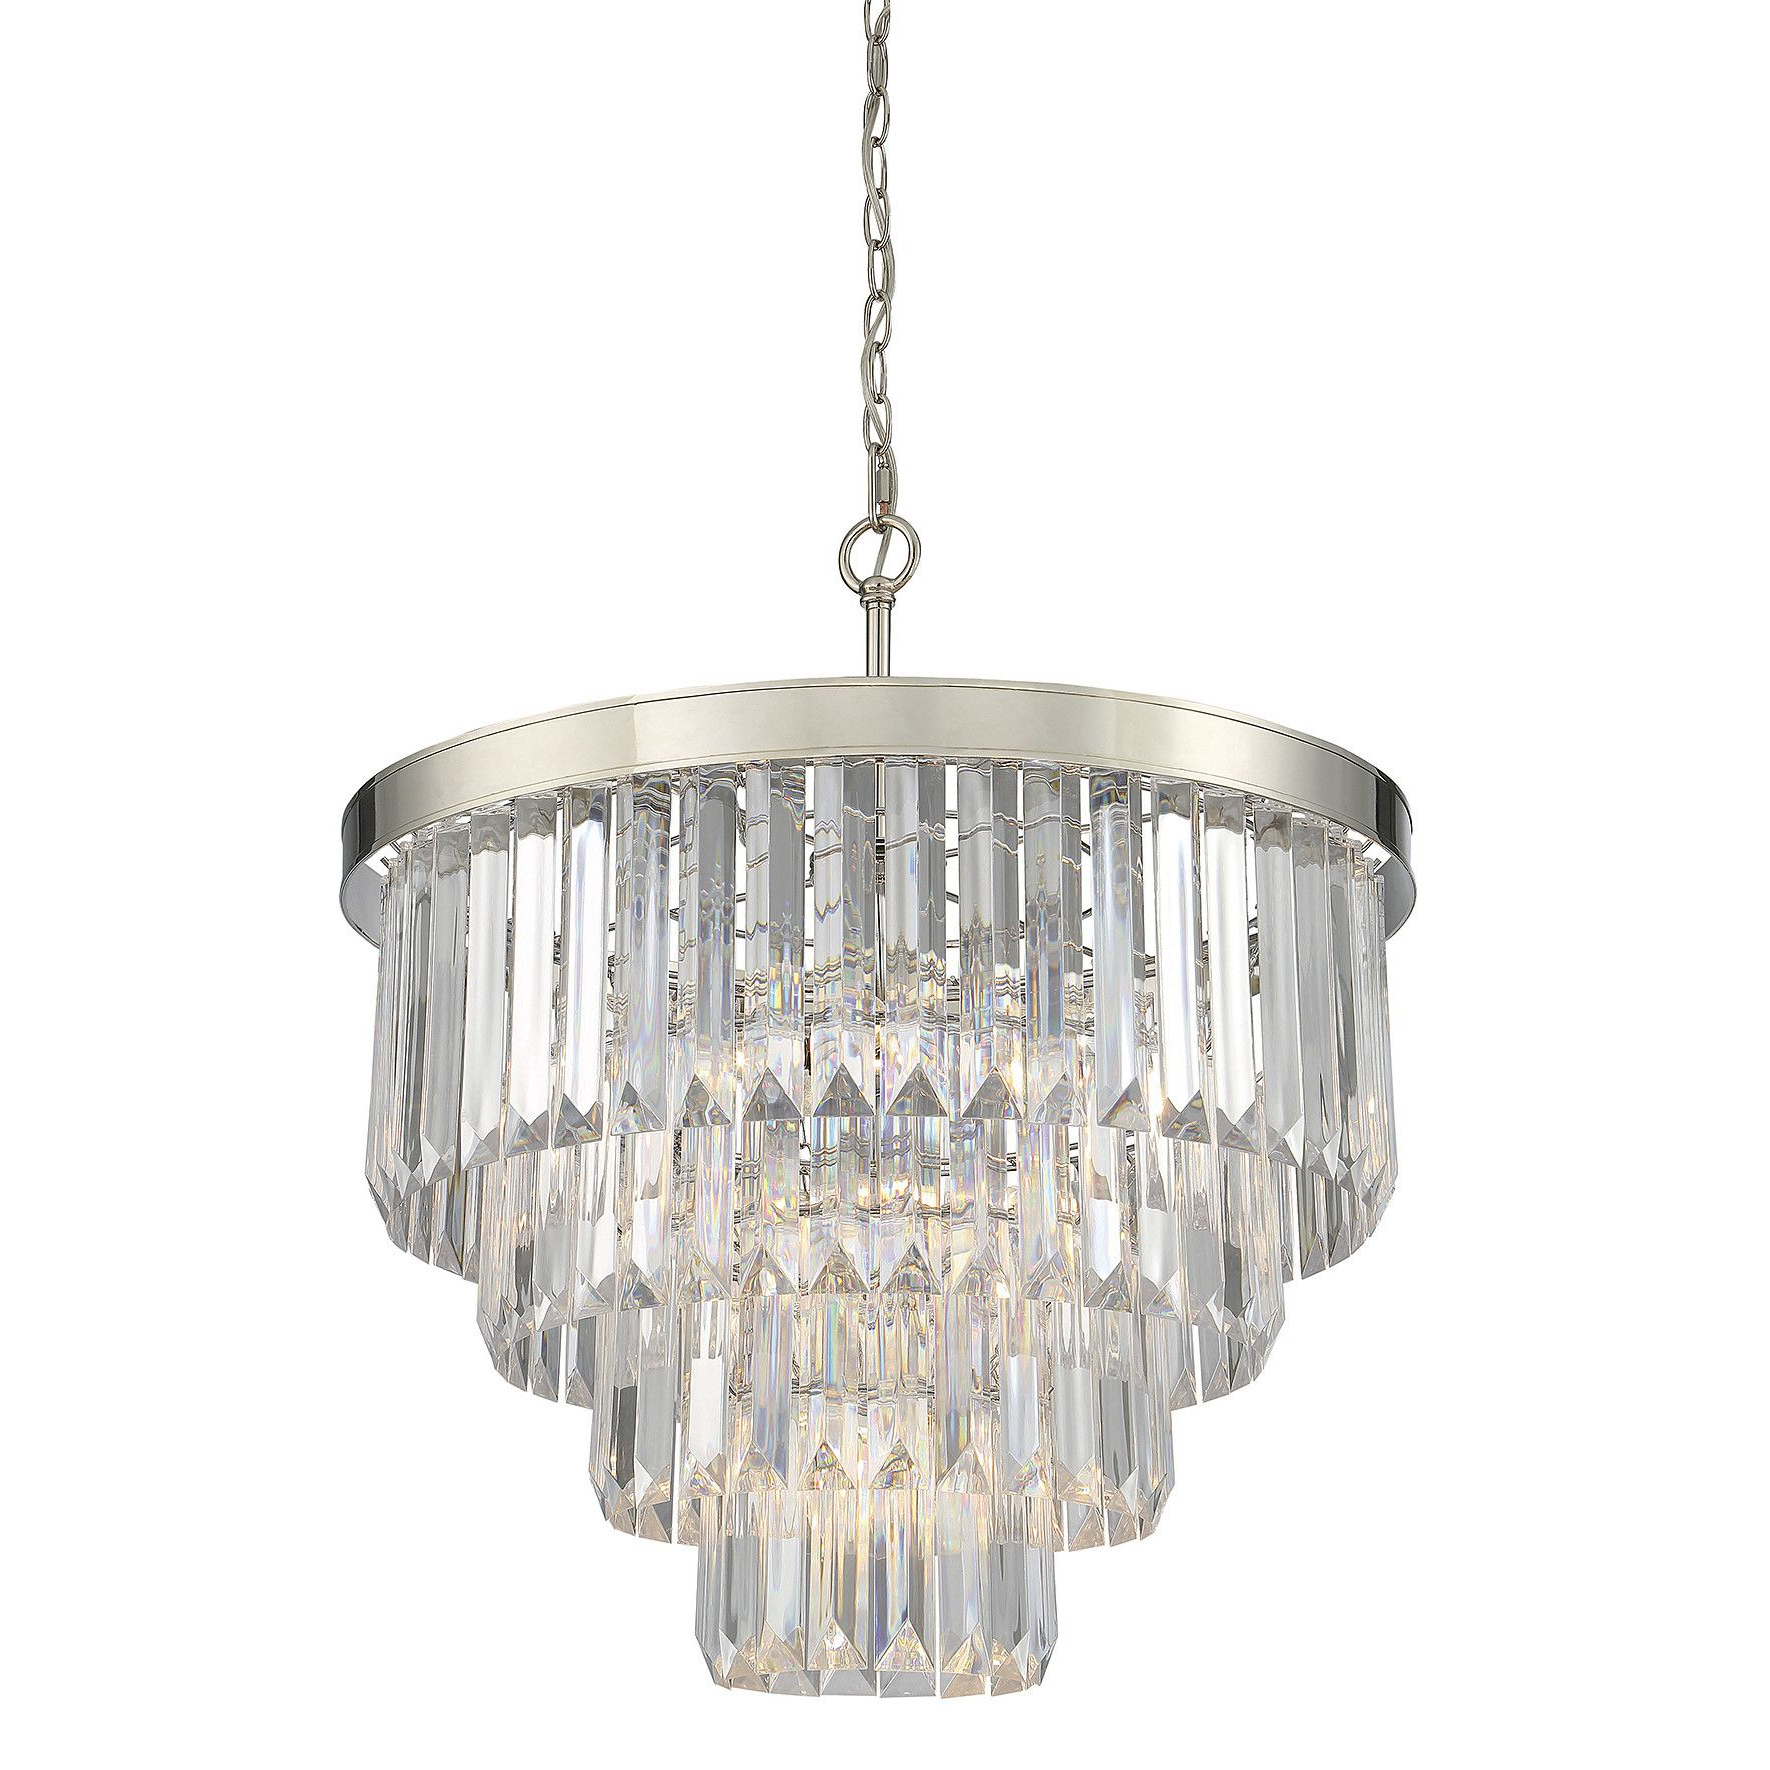 2019 Bramers 6 Light Novelty Chandeliers Pertaining To Mornimont 6 Light Drum Chandelier (View 6 of 20)